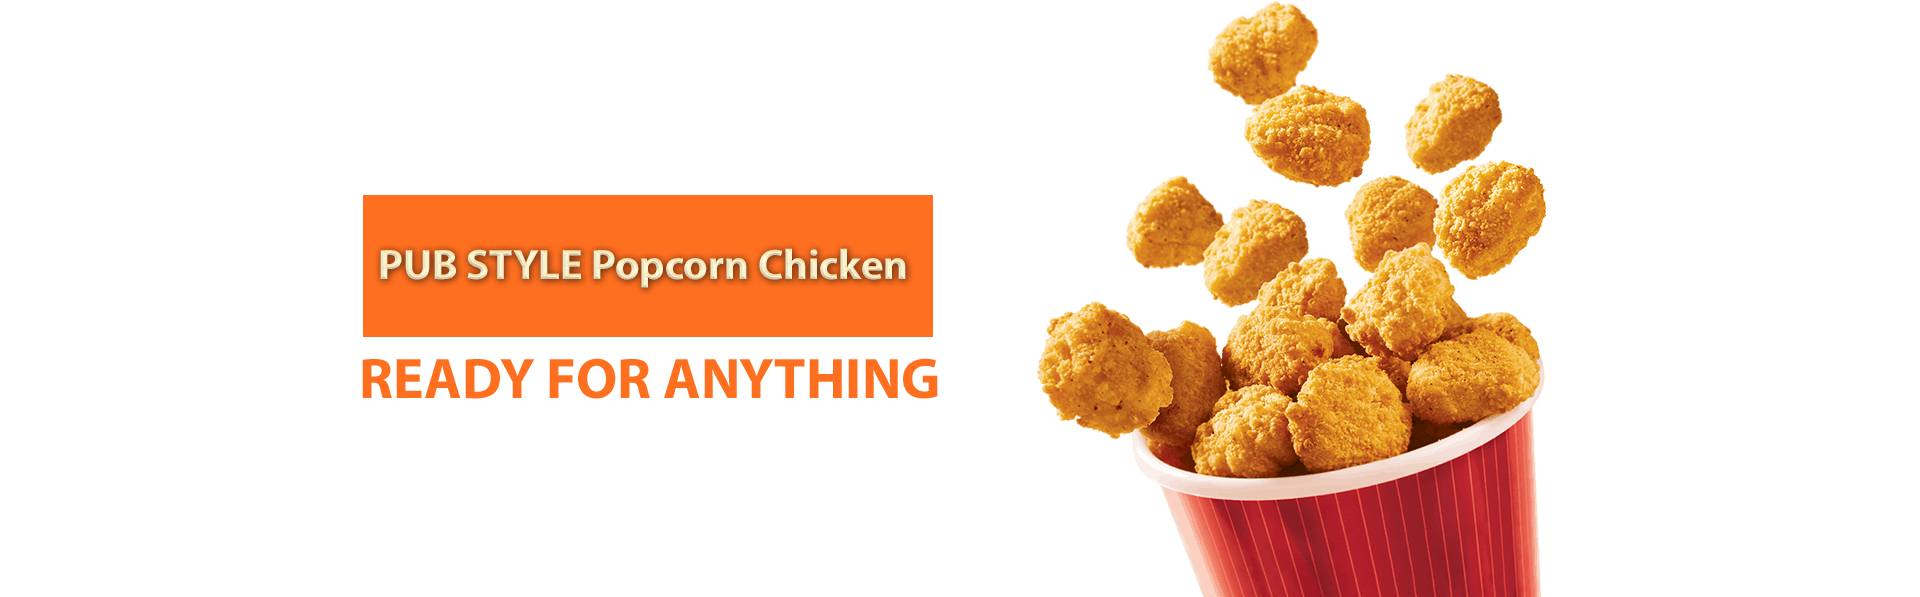 Popcorn Chicken - Ready for Anything!